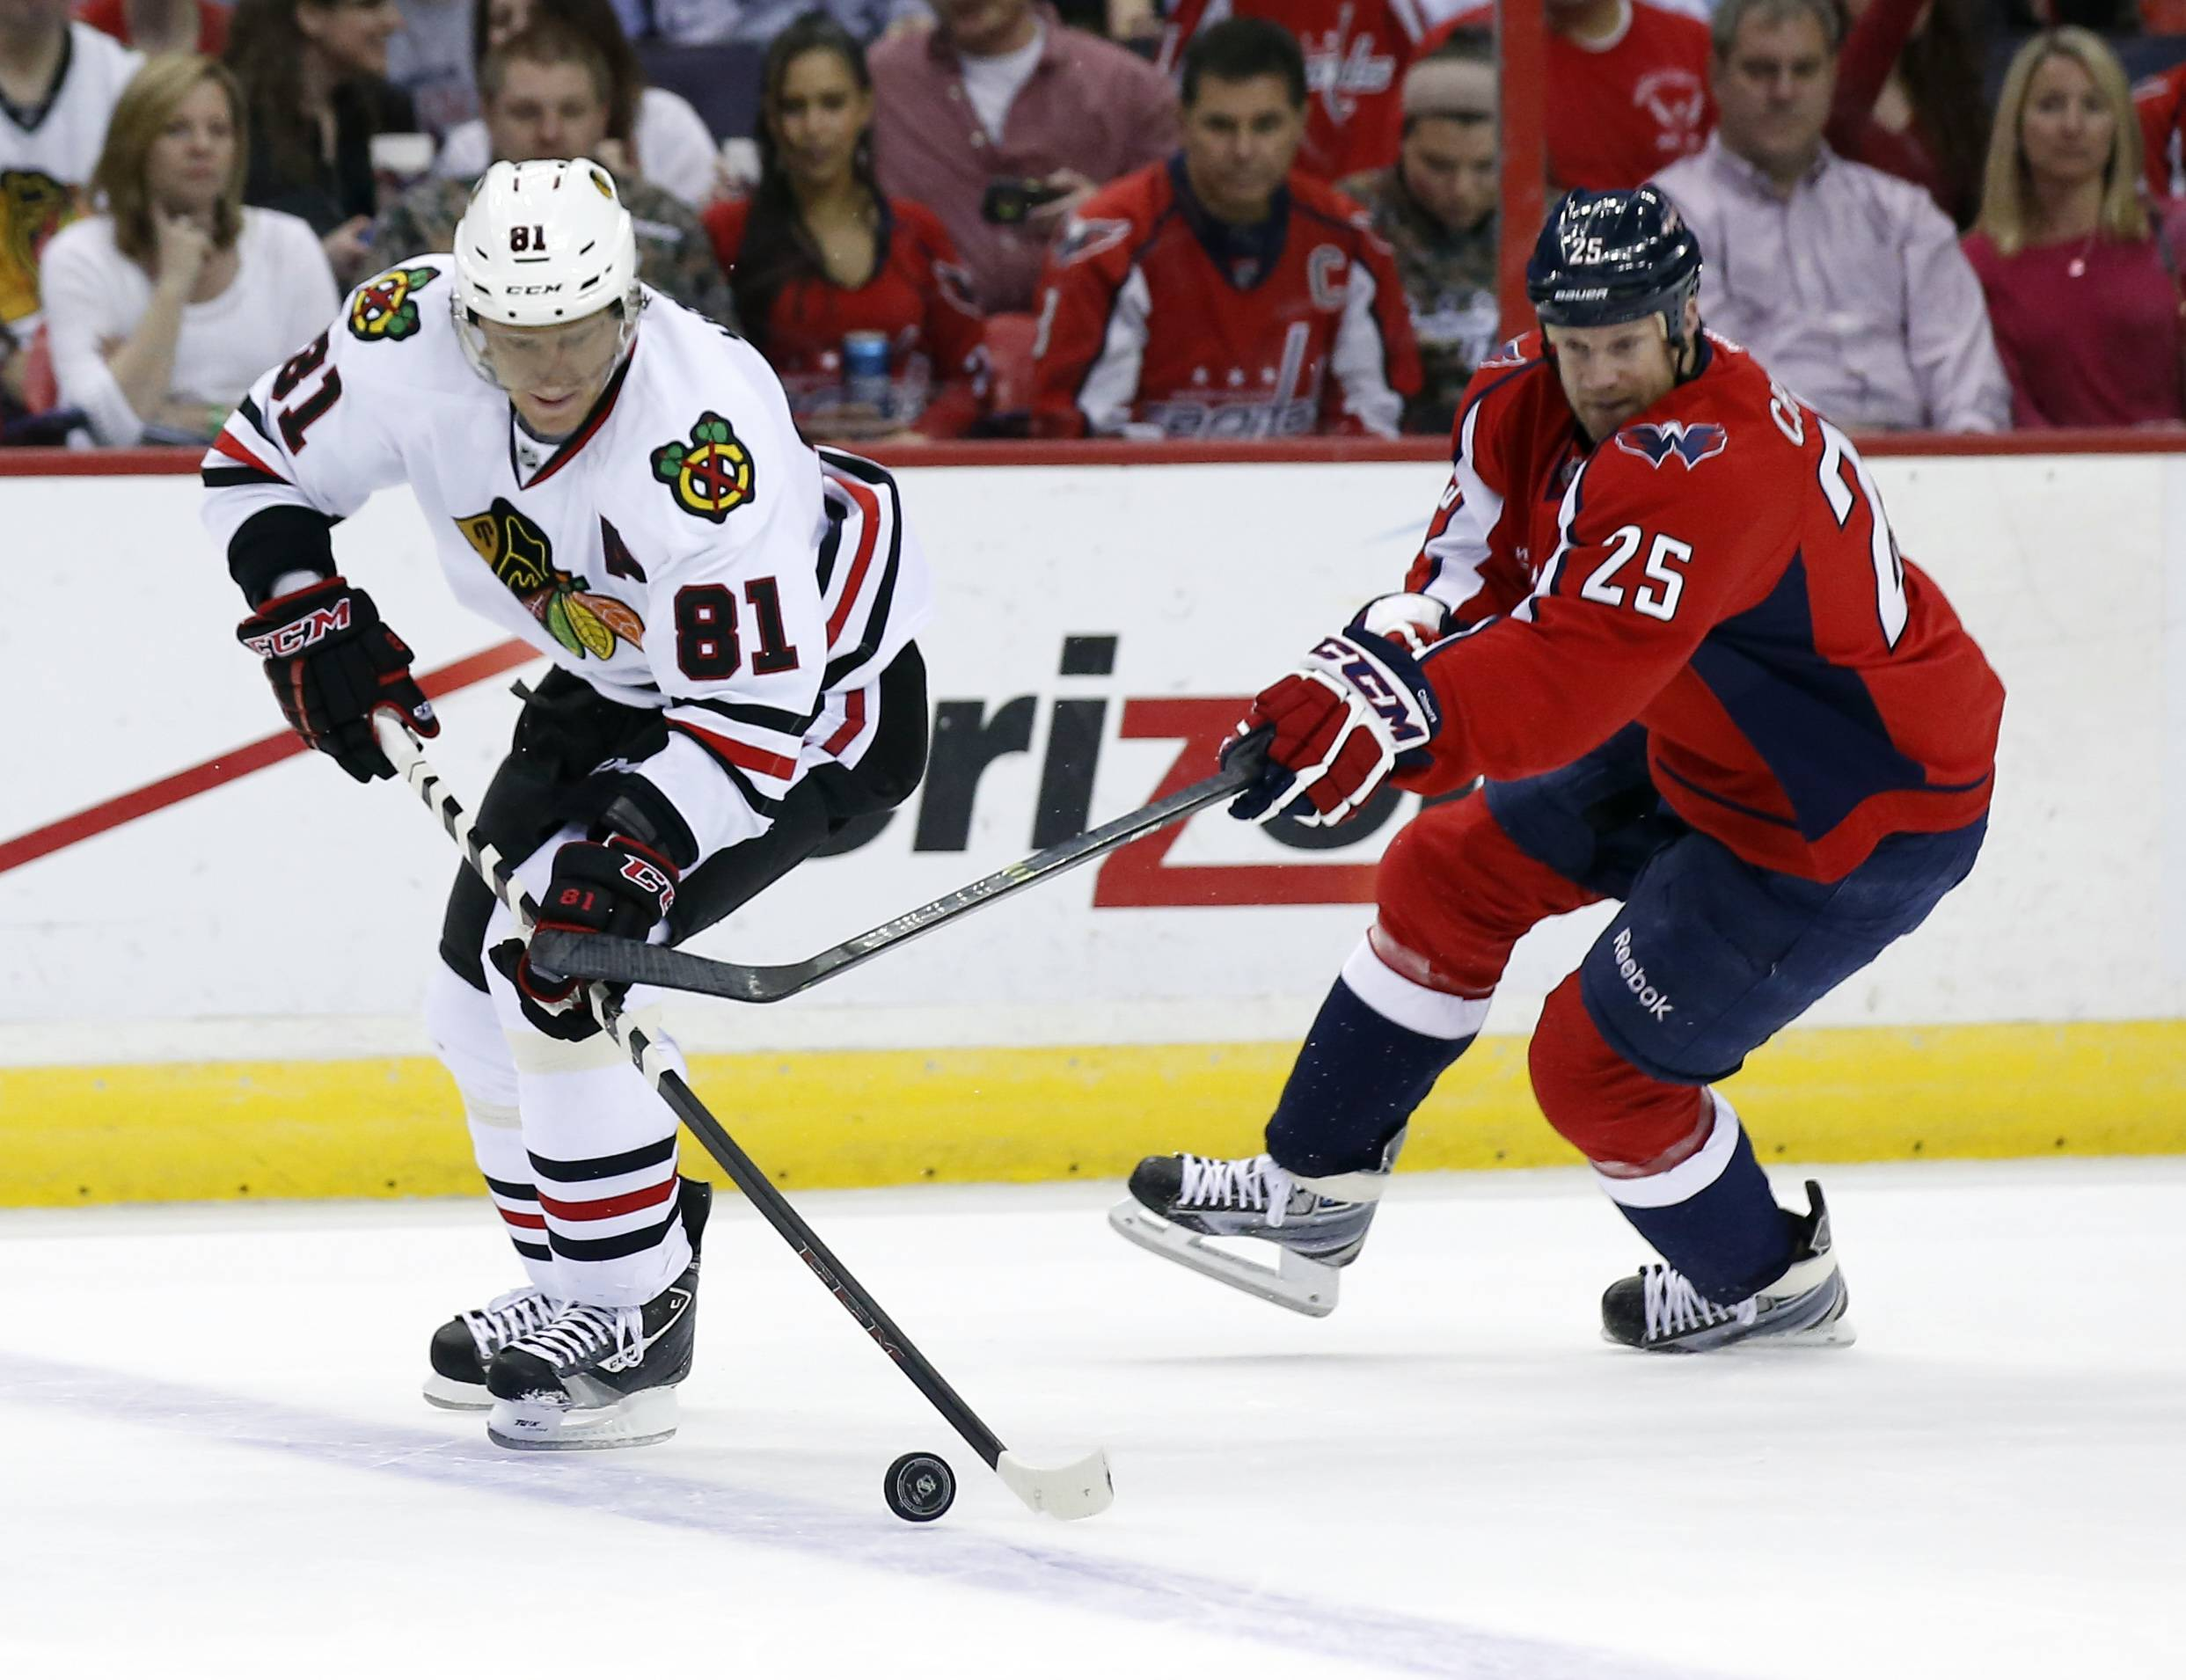 Chicago Blackhawks right wing Marian Hossa (81), from the Czech Republic, skates with the puck as he defended by Washington Capitals left wing Jason Chimera (25) in the first period of an NHL hockey game, Friday, April 11, 2014, in Washington.